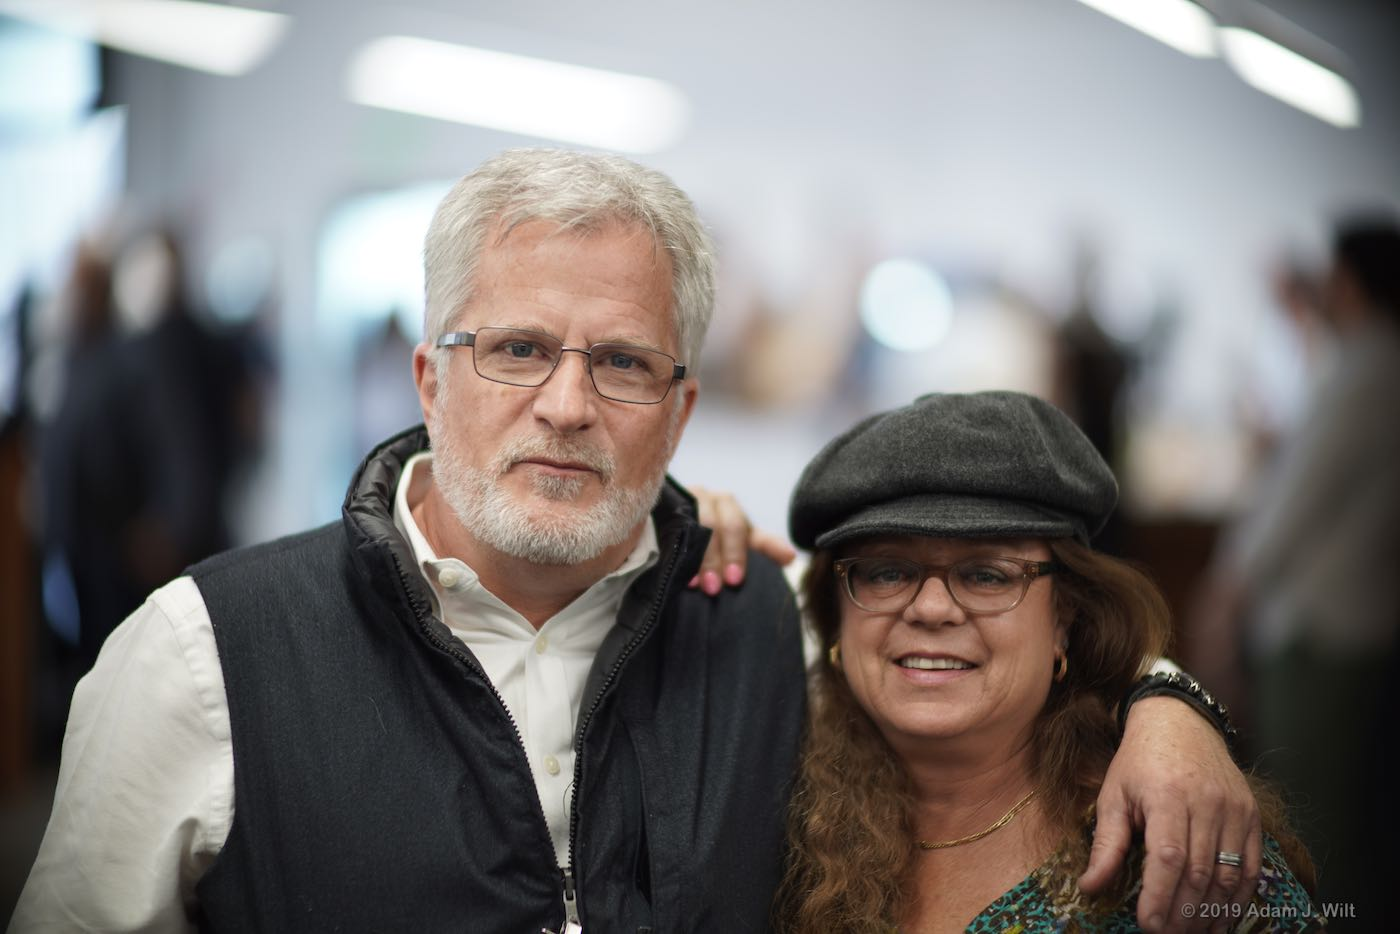 Canon's Tim Smith and Stephanie Franz at the PNW Lens Summit, 85mm Sumire Prime @ T1.3